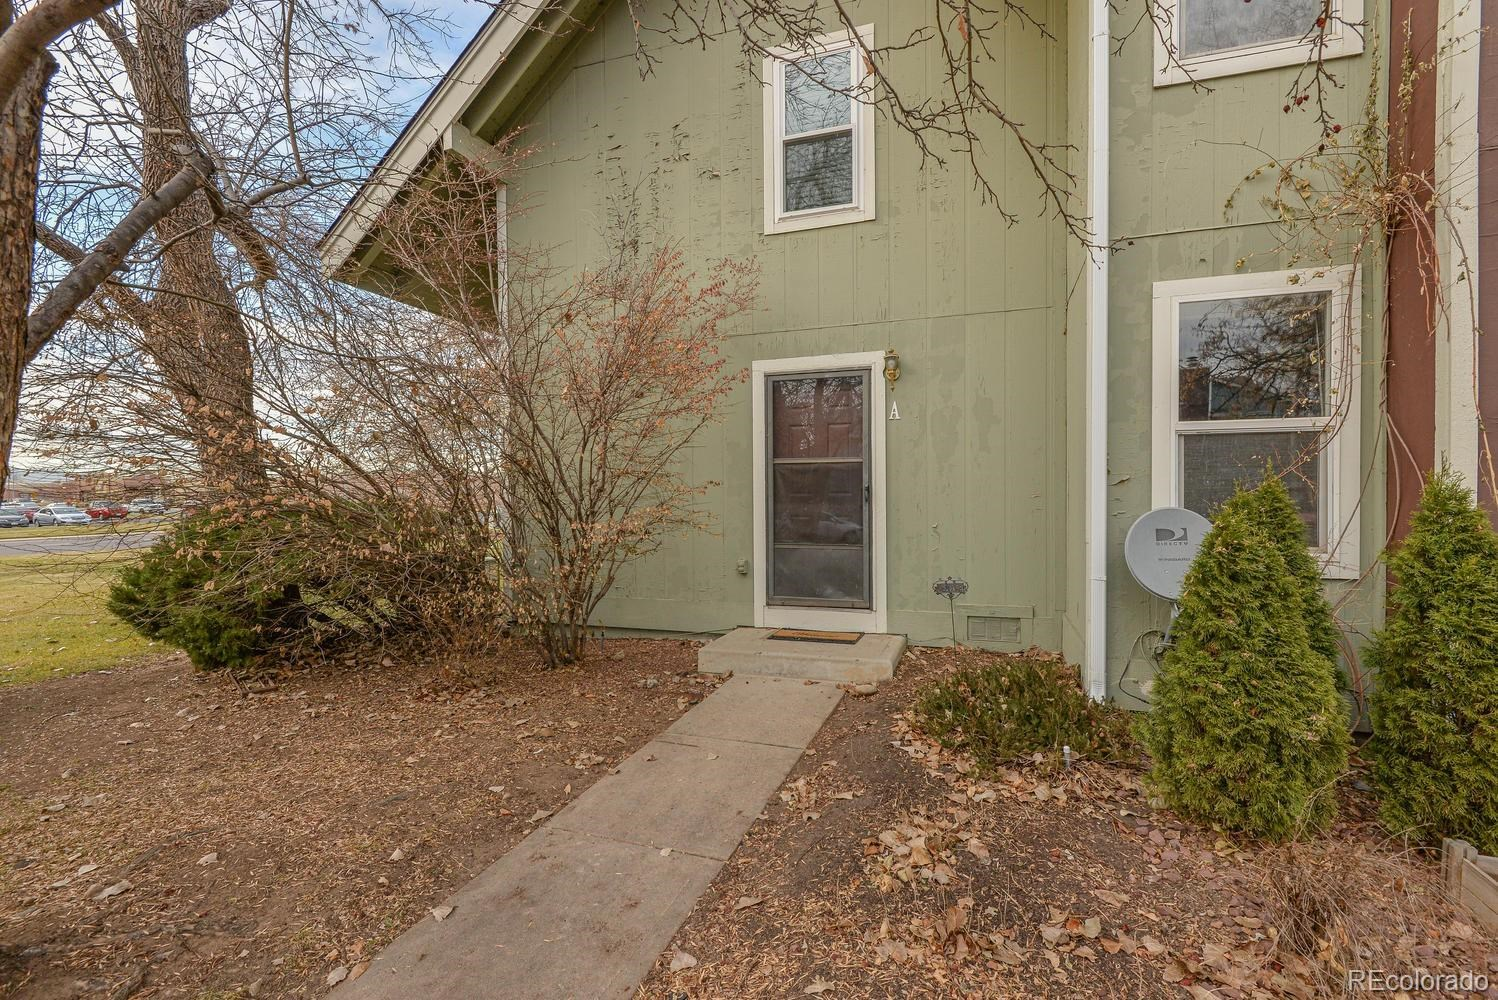 MLS# 7503393 - 2 - 300 Sundance Circle #A101, Fort Collins, CO 80524